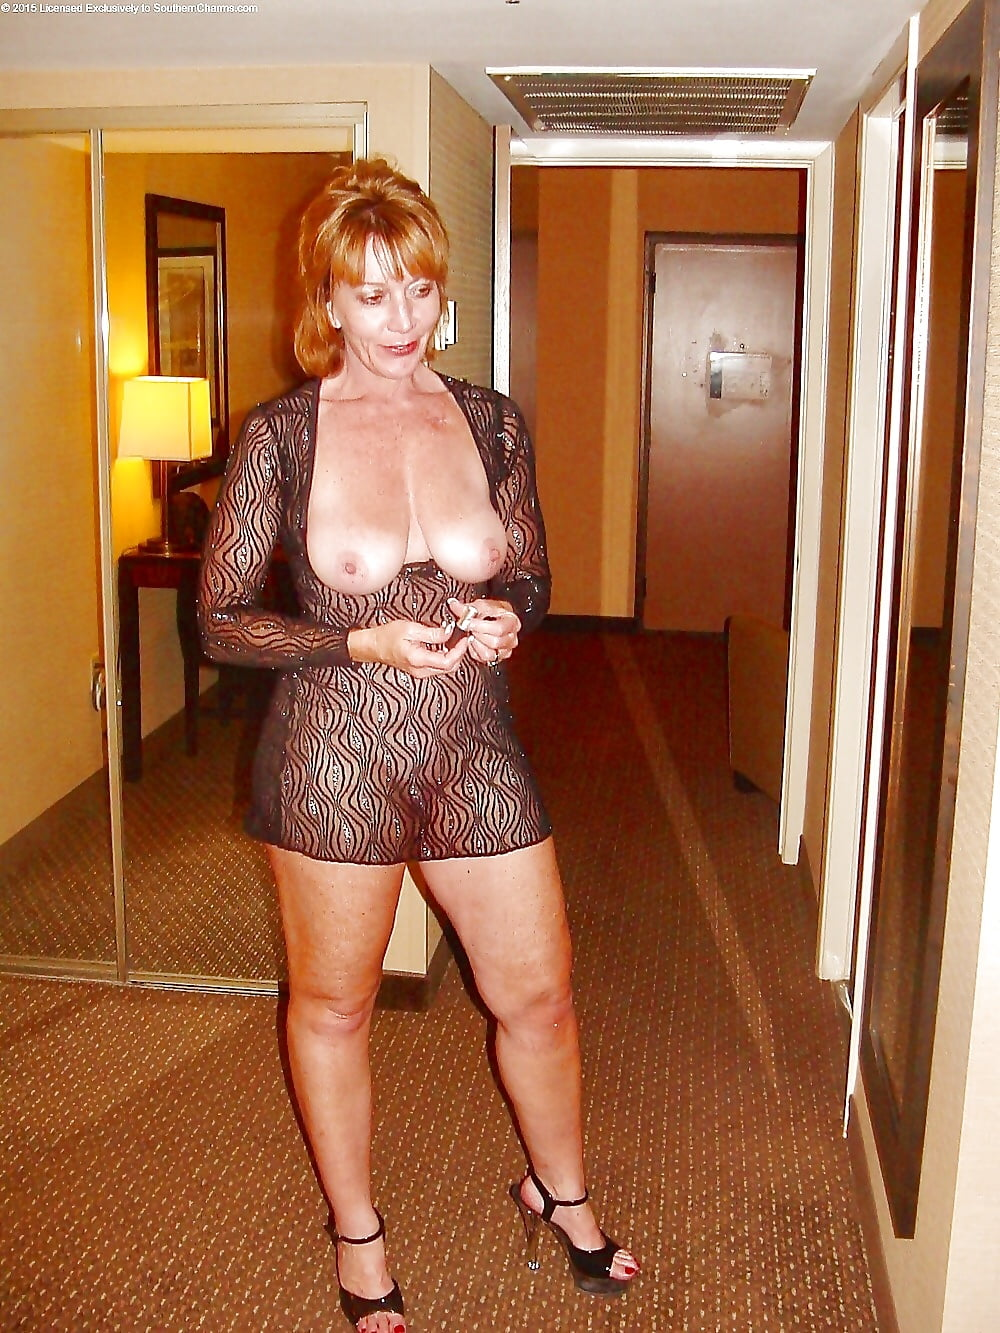 Southern charms just me milf